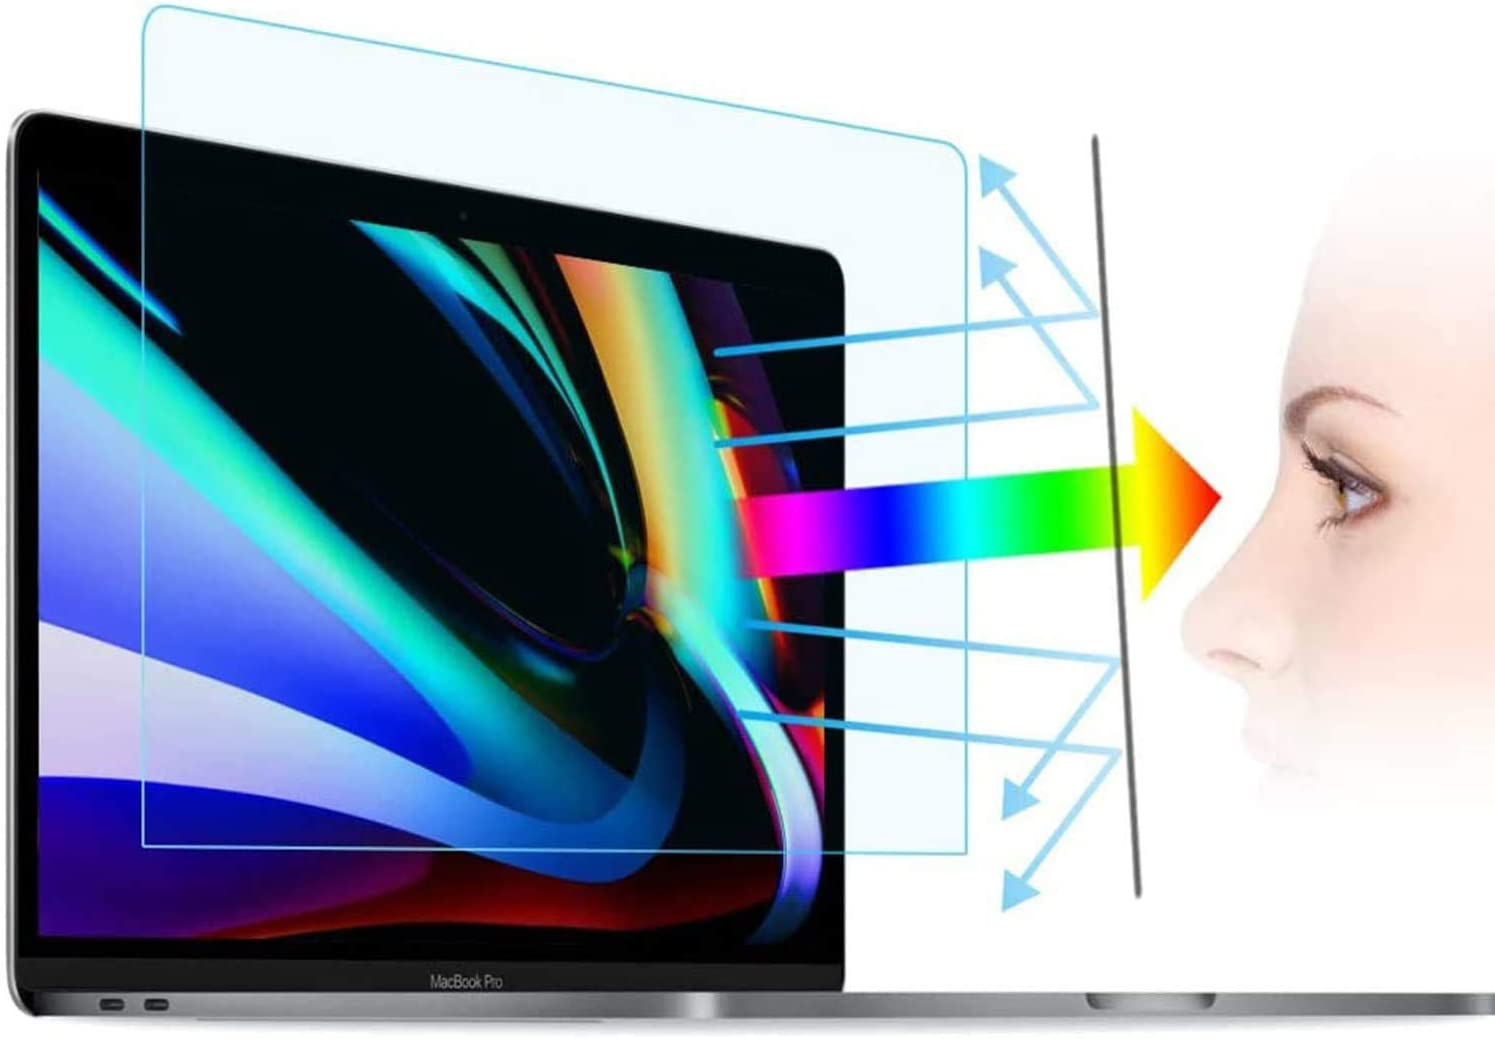 2PC Anti Blue Light Laptop Screen Protector Compatible with MacBook Pro 16 Inch 2019 Released with Touch ID & Touch Bar (A2141) - Anti-Glare/Anti Scratch Matte Laptop Screen Protector Guard